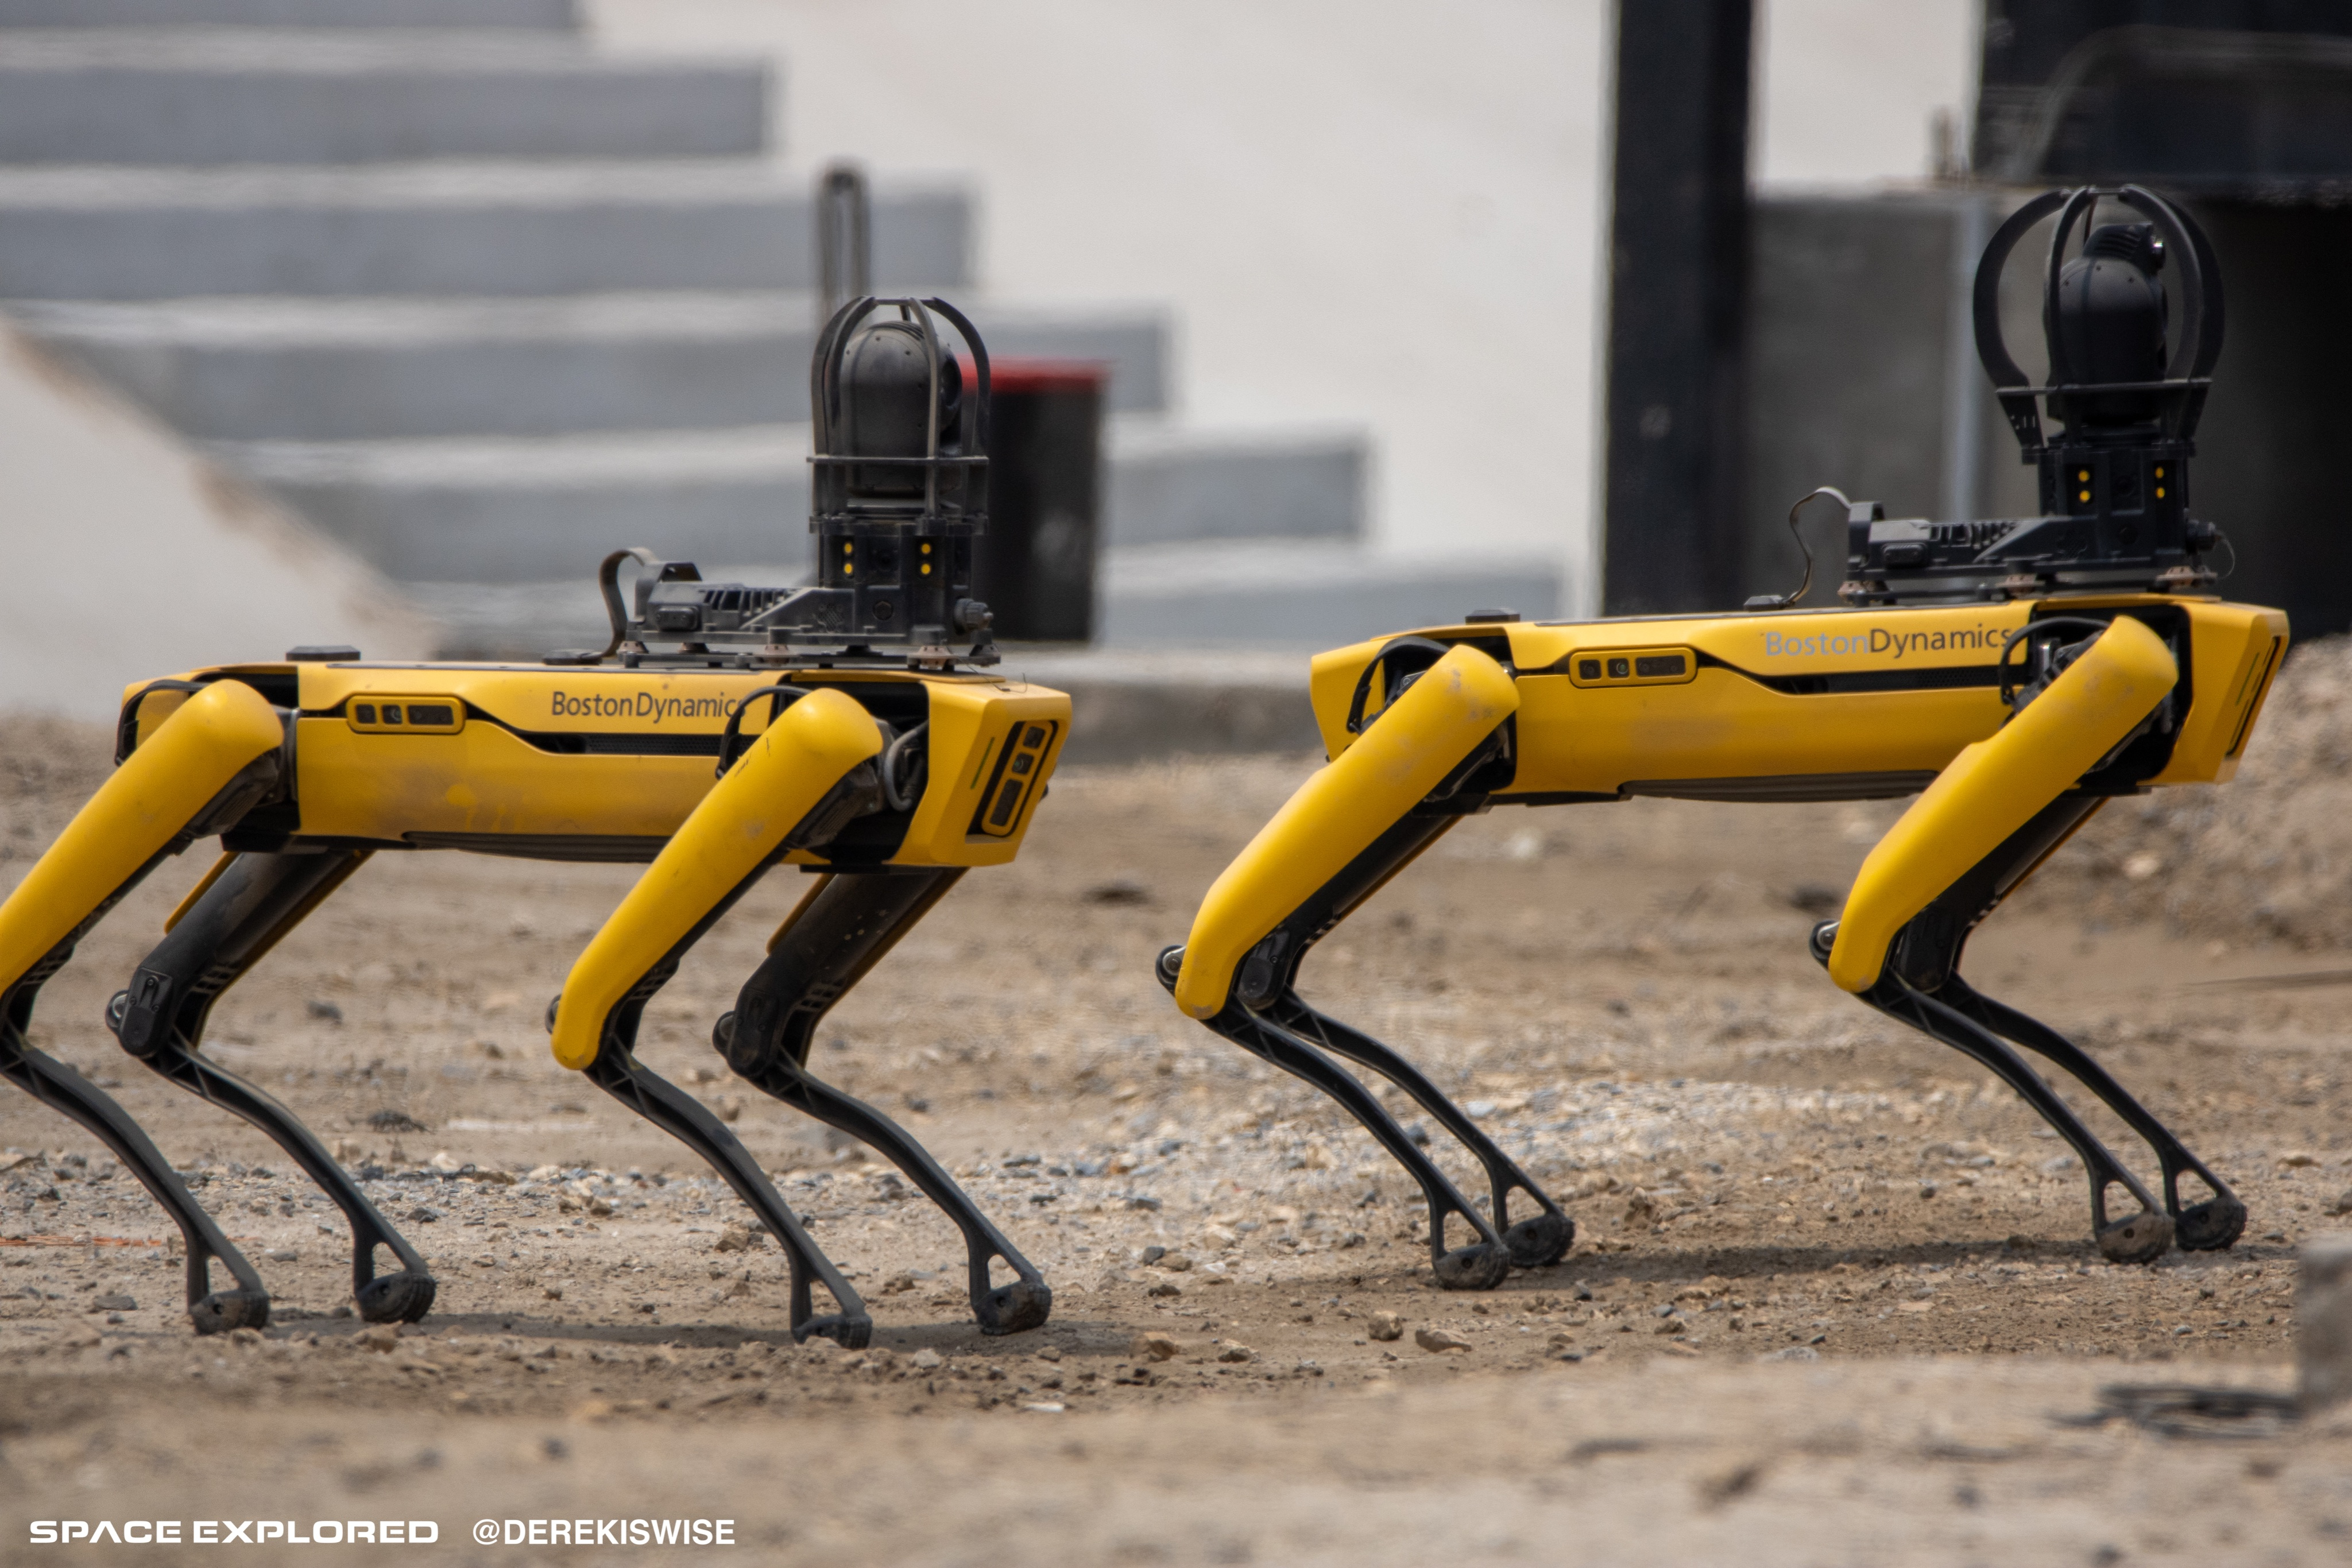 Boston Dynamics Spot robots at spaceX facility in Texas